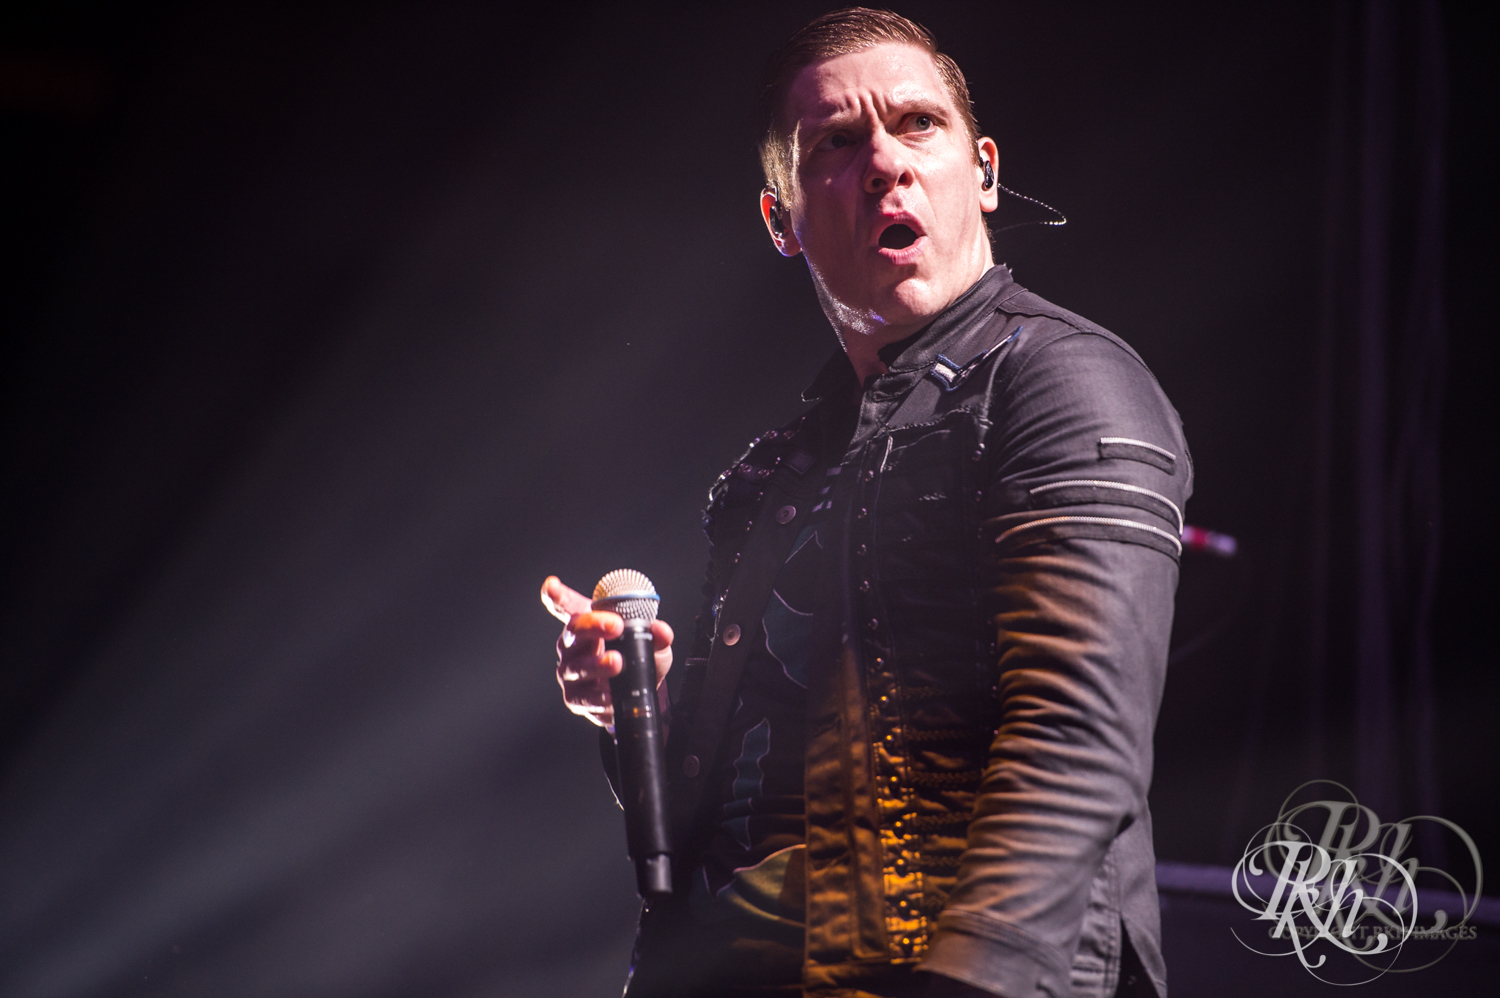 Shinedown - Minnesota Concert Photography - Target Center - Minneapolis - RKH Images (17 of 19).jpg